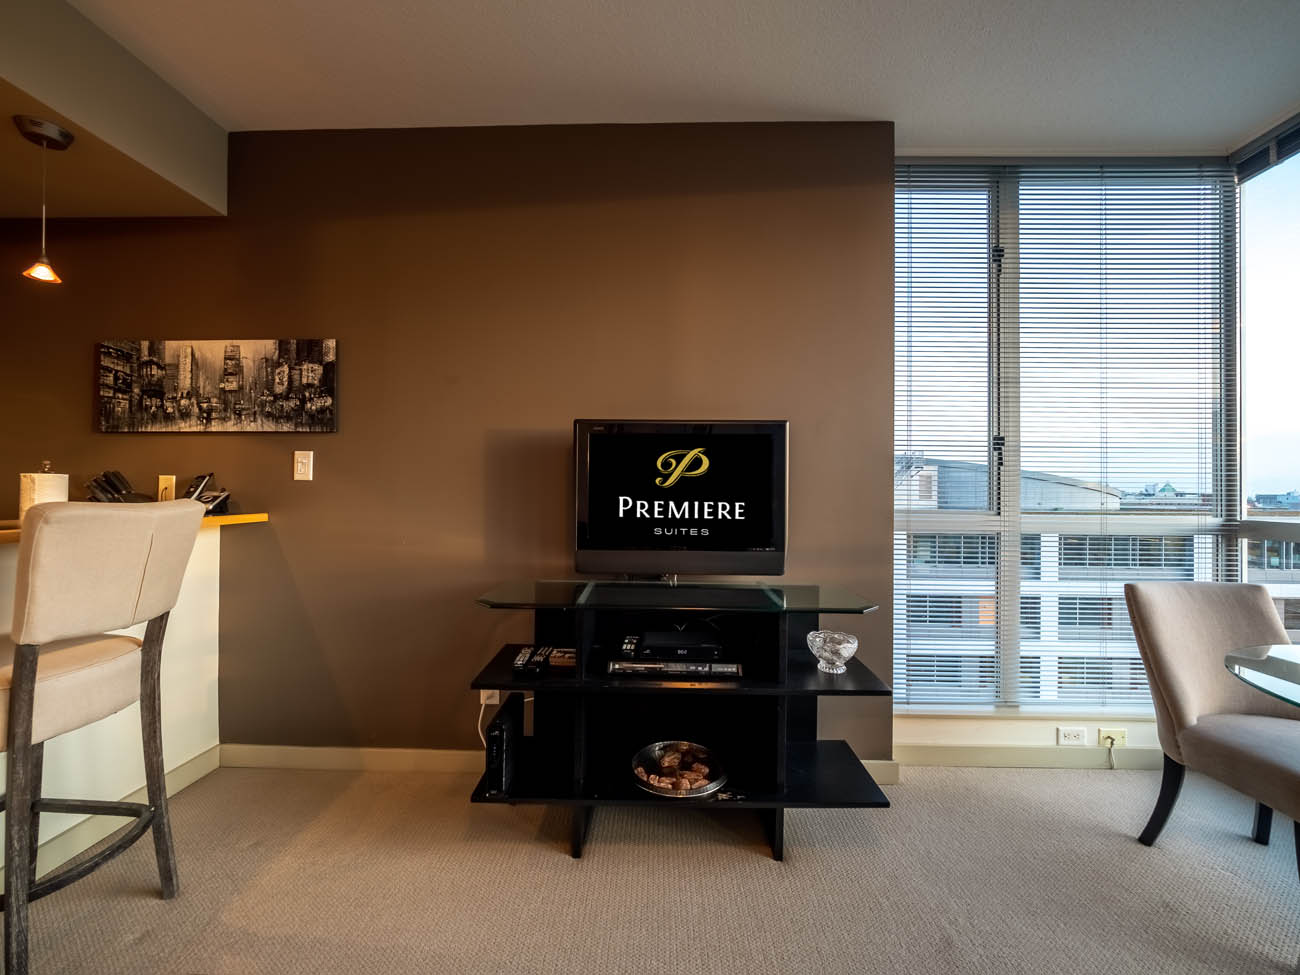 Furnished apartment suite living room with TV